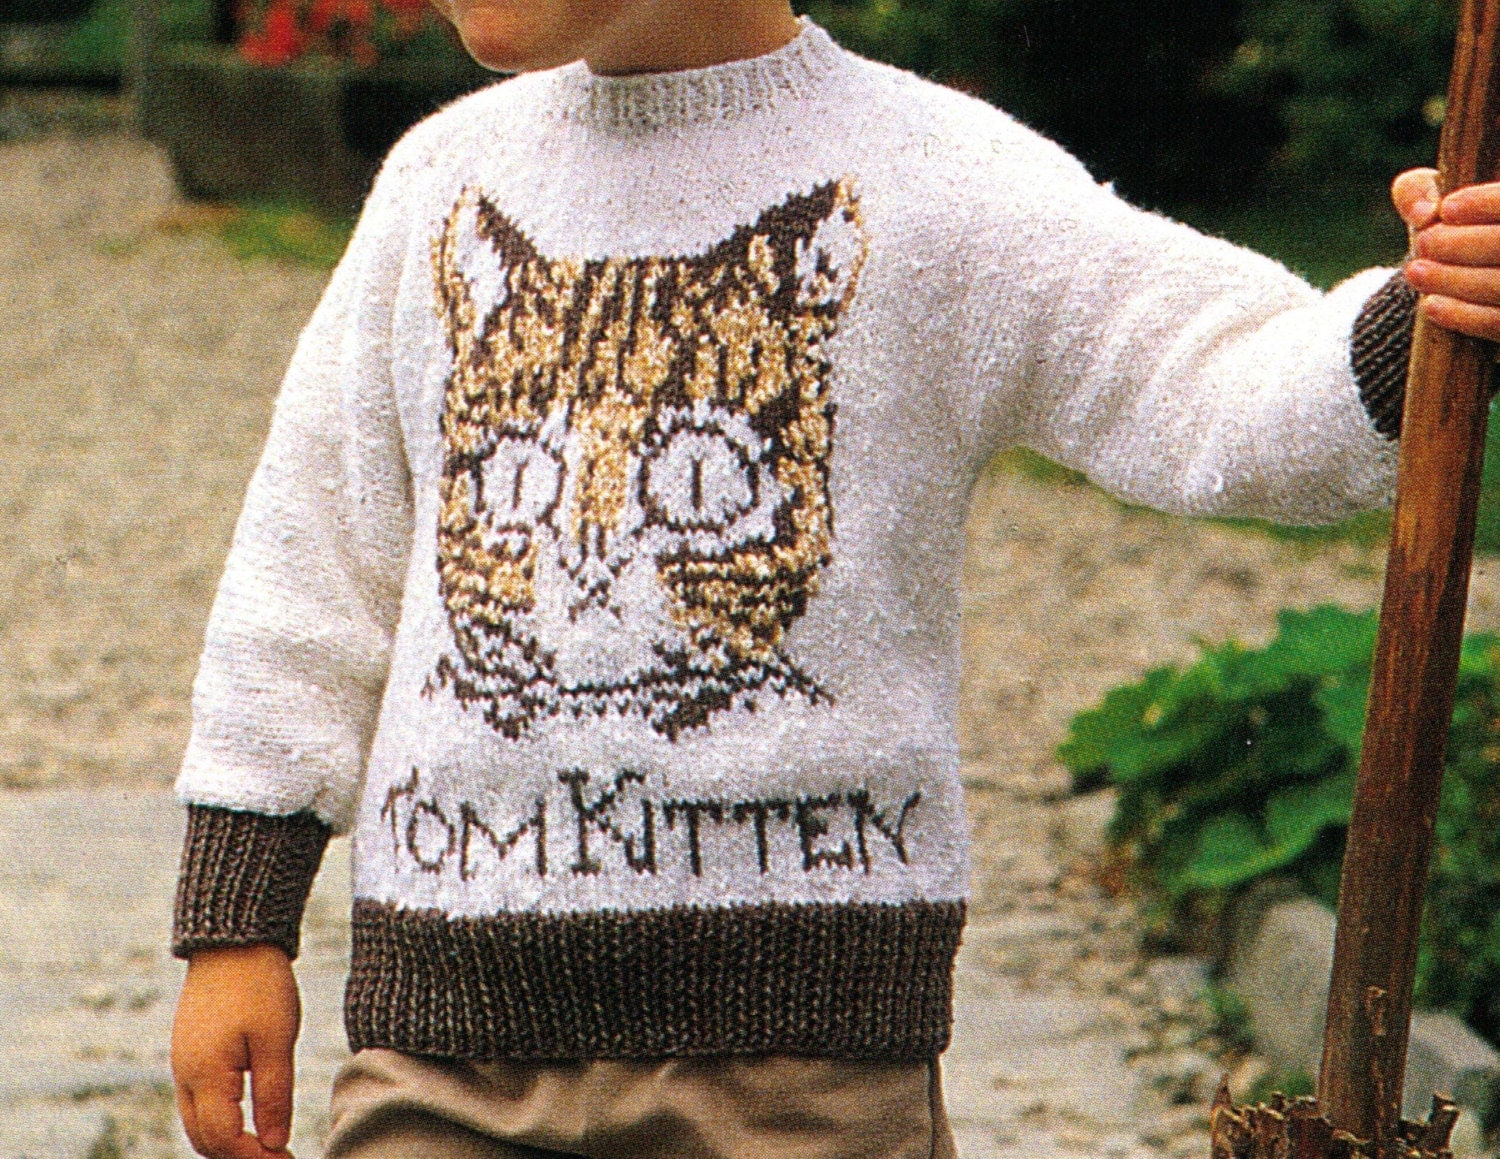 Peter Rabbit Knitting Pattern Download : Tom the kitten from peter rabbit winter jumper or sweater